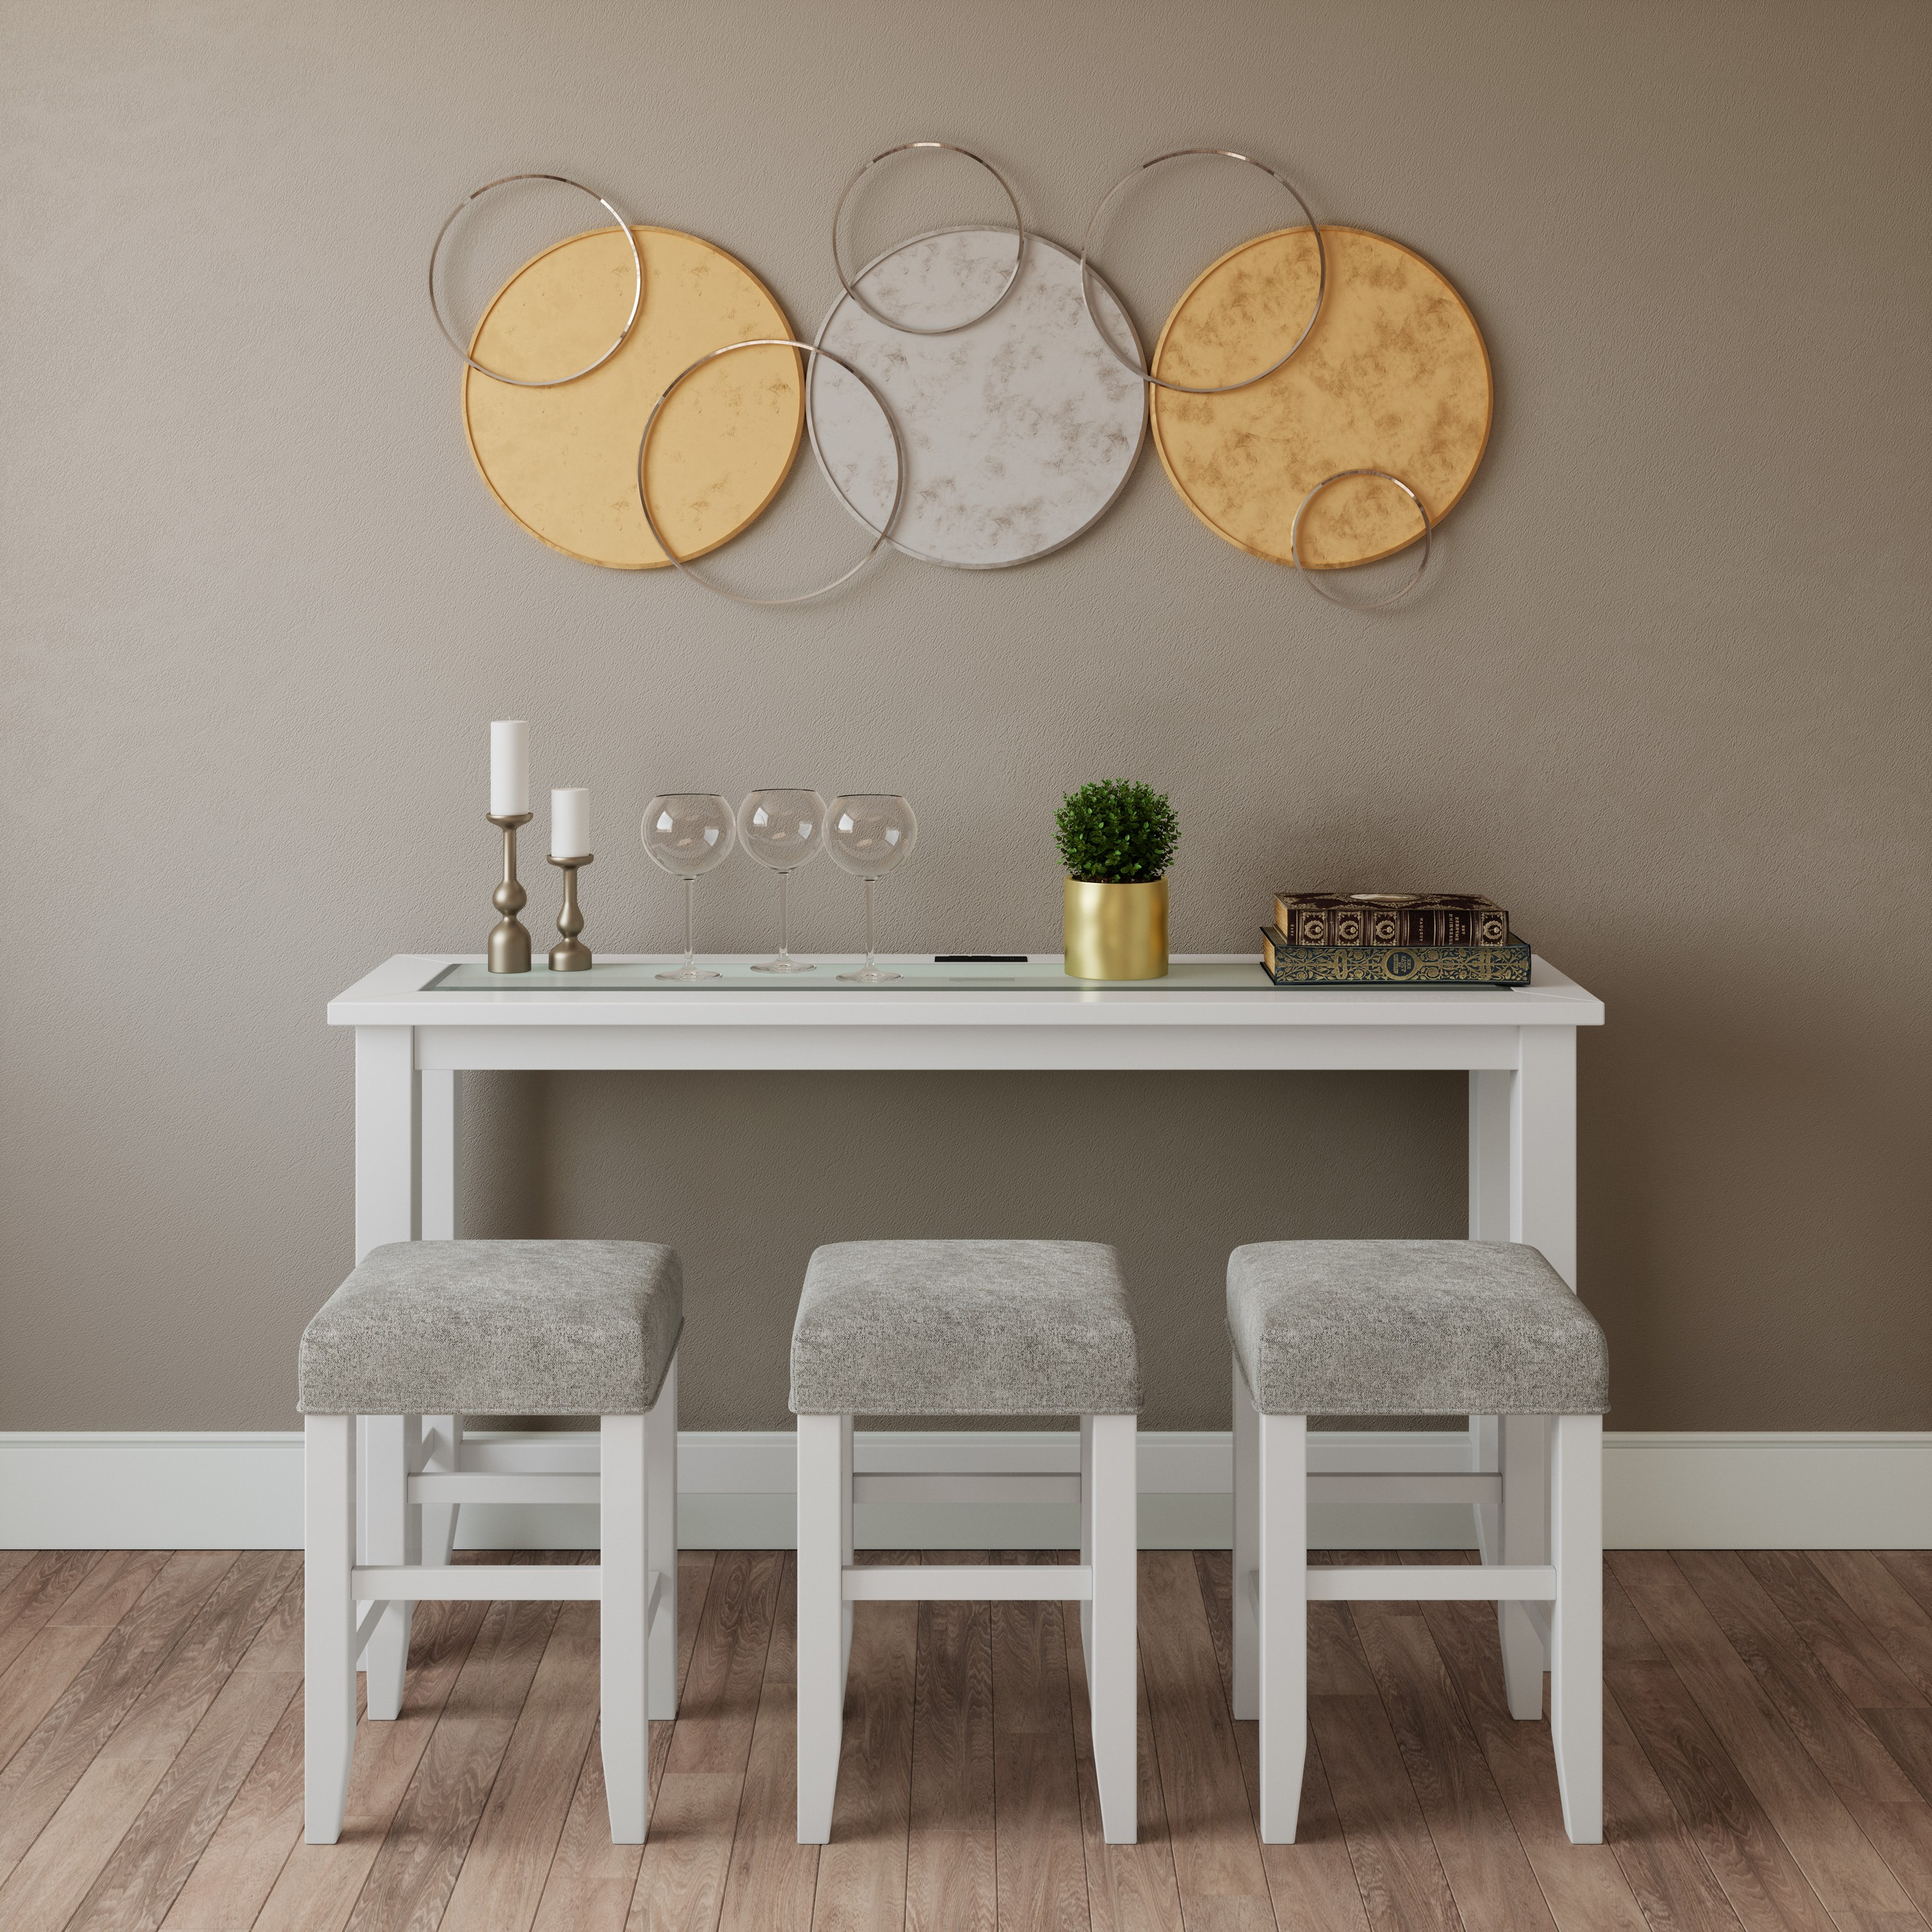 Urban Icon Sofa Counter Dining - 4 Piece by Jofran at Sparks HomeStore